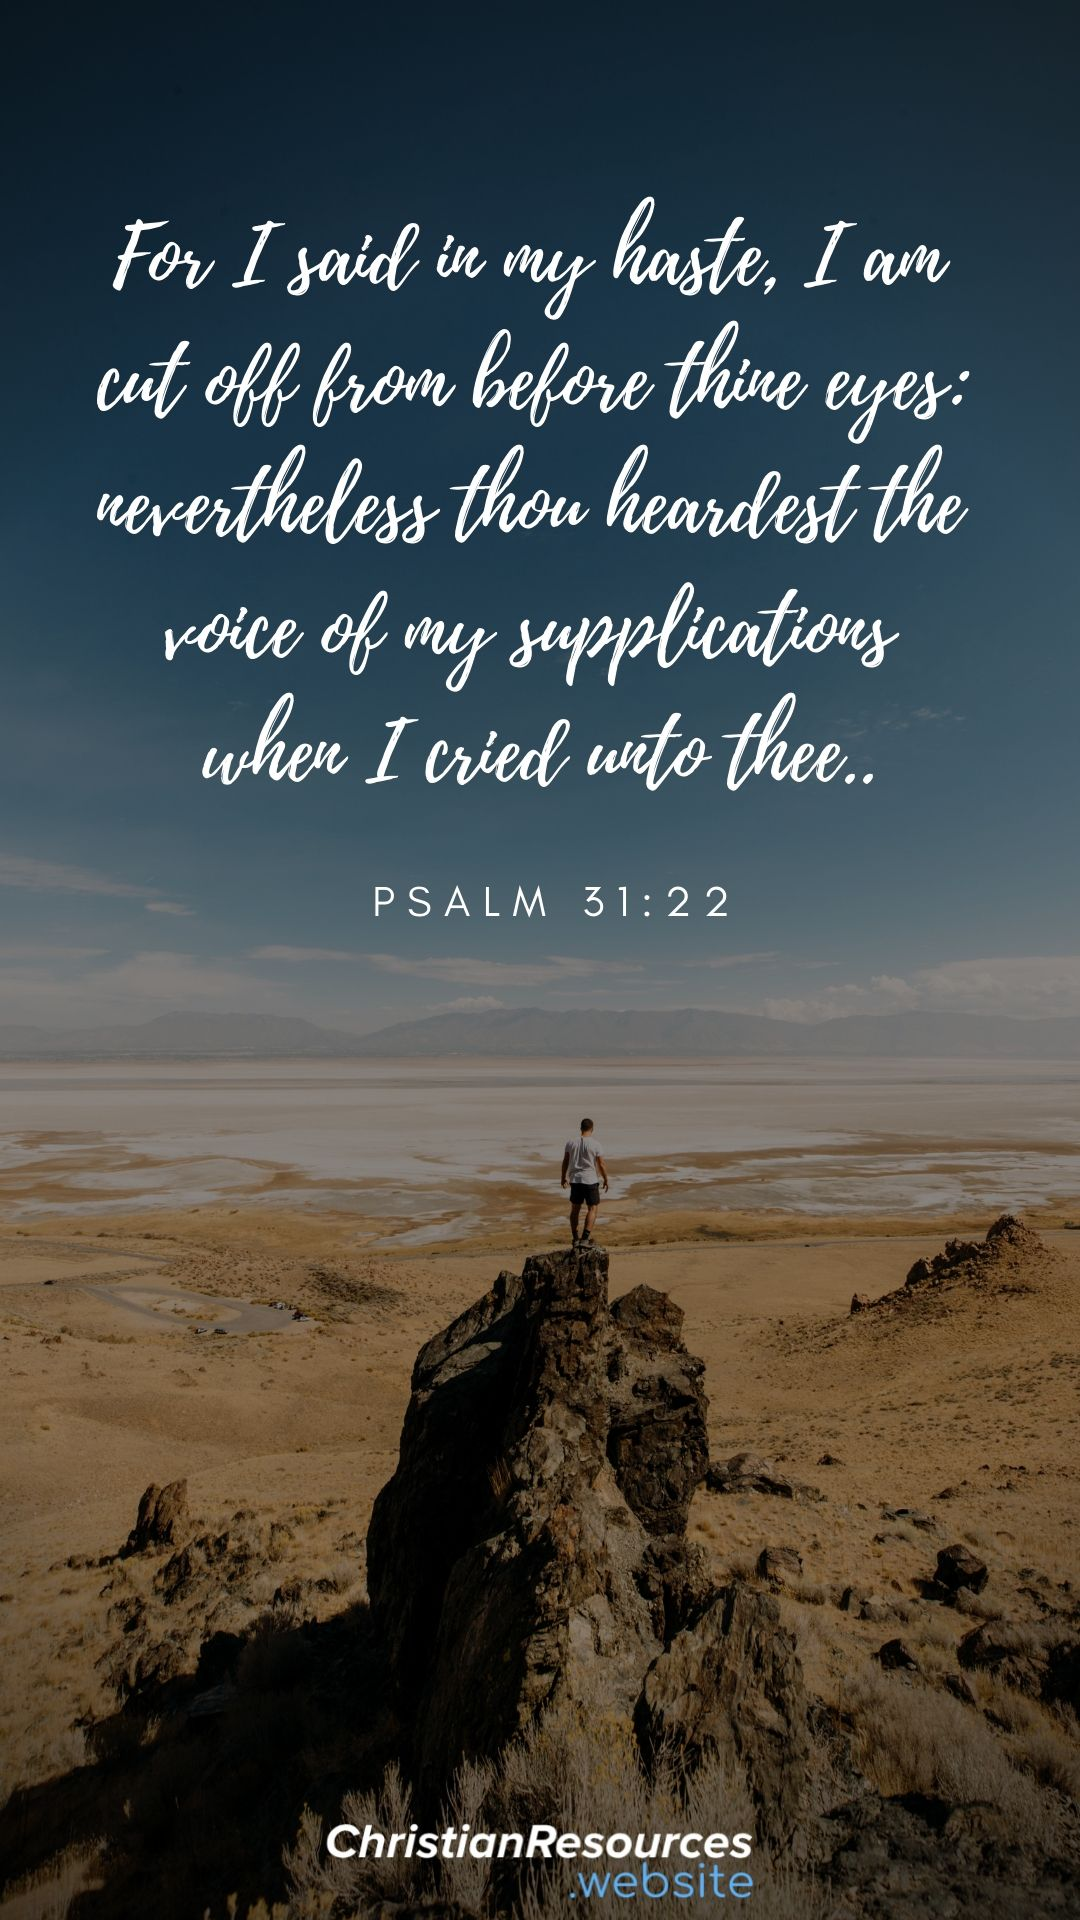 For I said in my haste, I am cut off from before thine eyes: nevertheless thou heardest the voice of my supplications when I cried unto thee (Psalm 31:22). #BibleVerses #BibleQuotes #ScriptureQuotes #GodQuotes #BibleQuotesInspirational #ChristianResources #Bible #Quotes